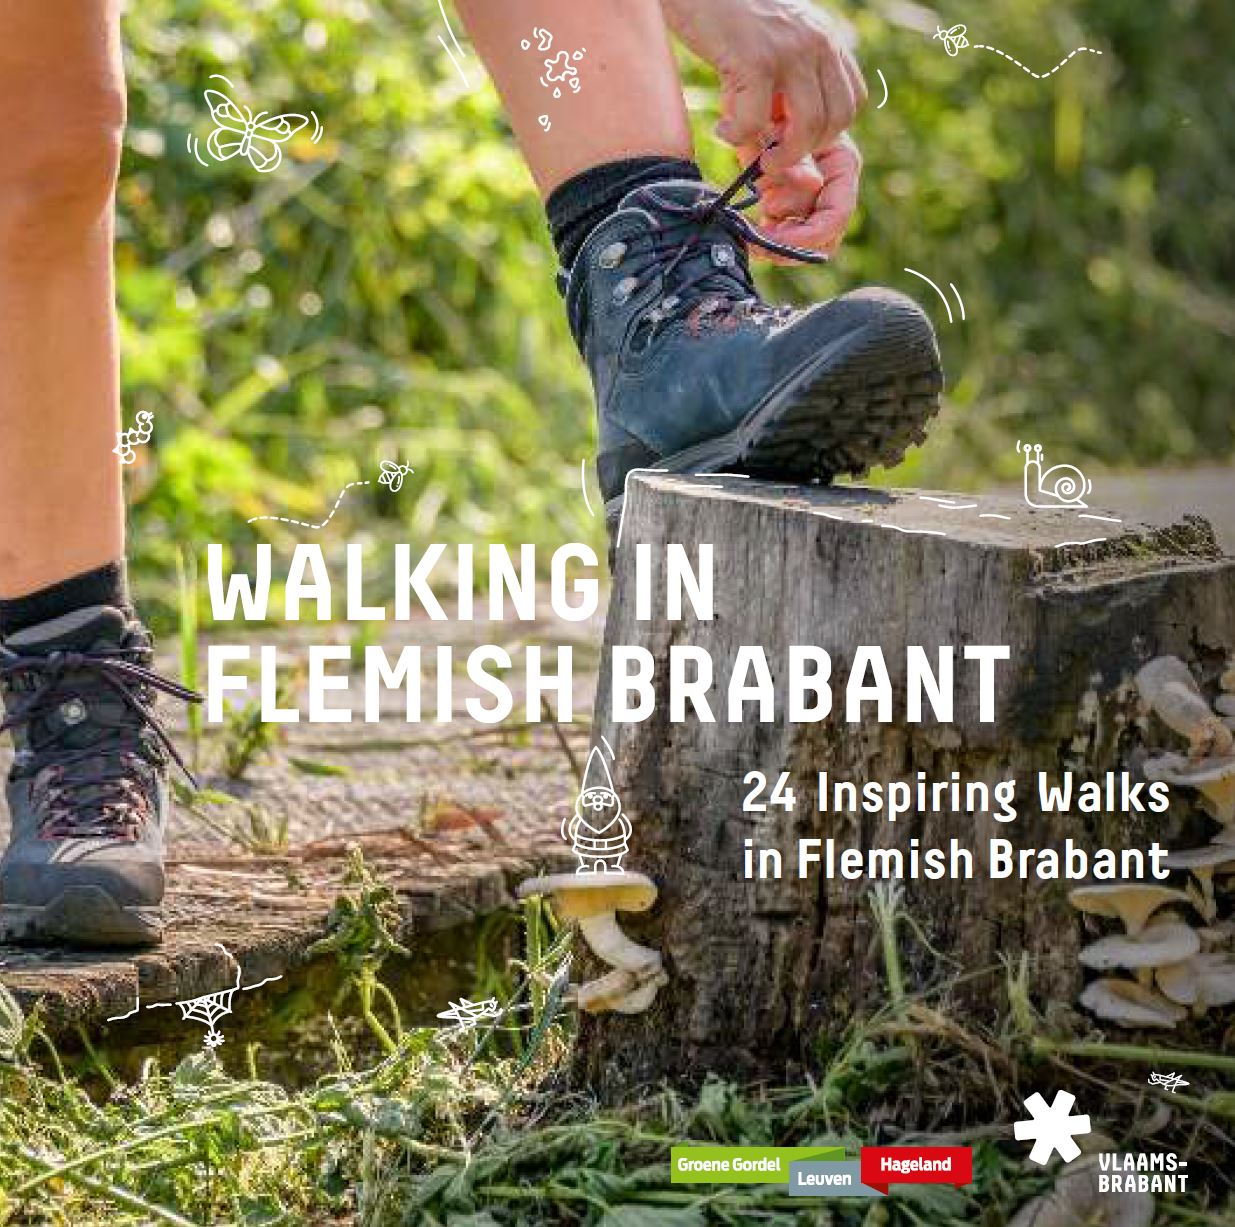 Walking in Flemish Brabant